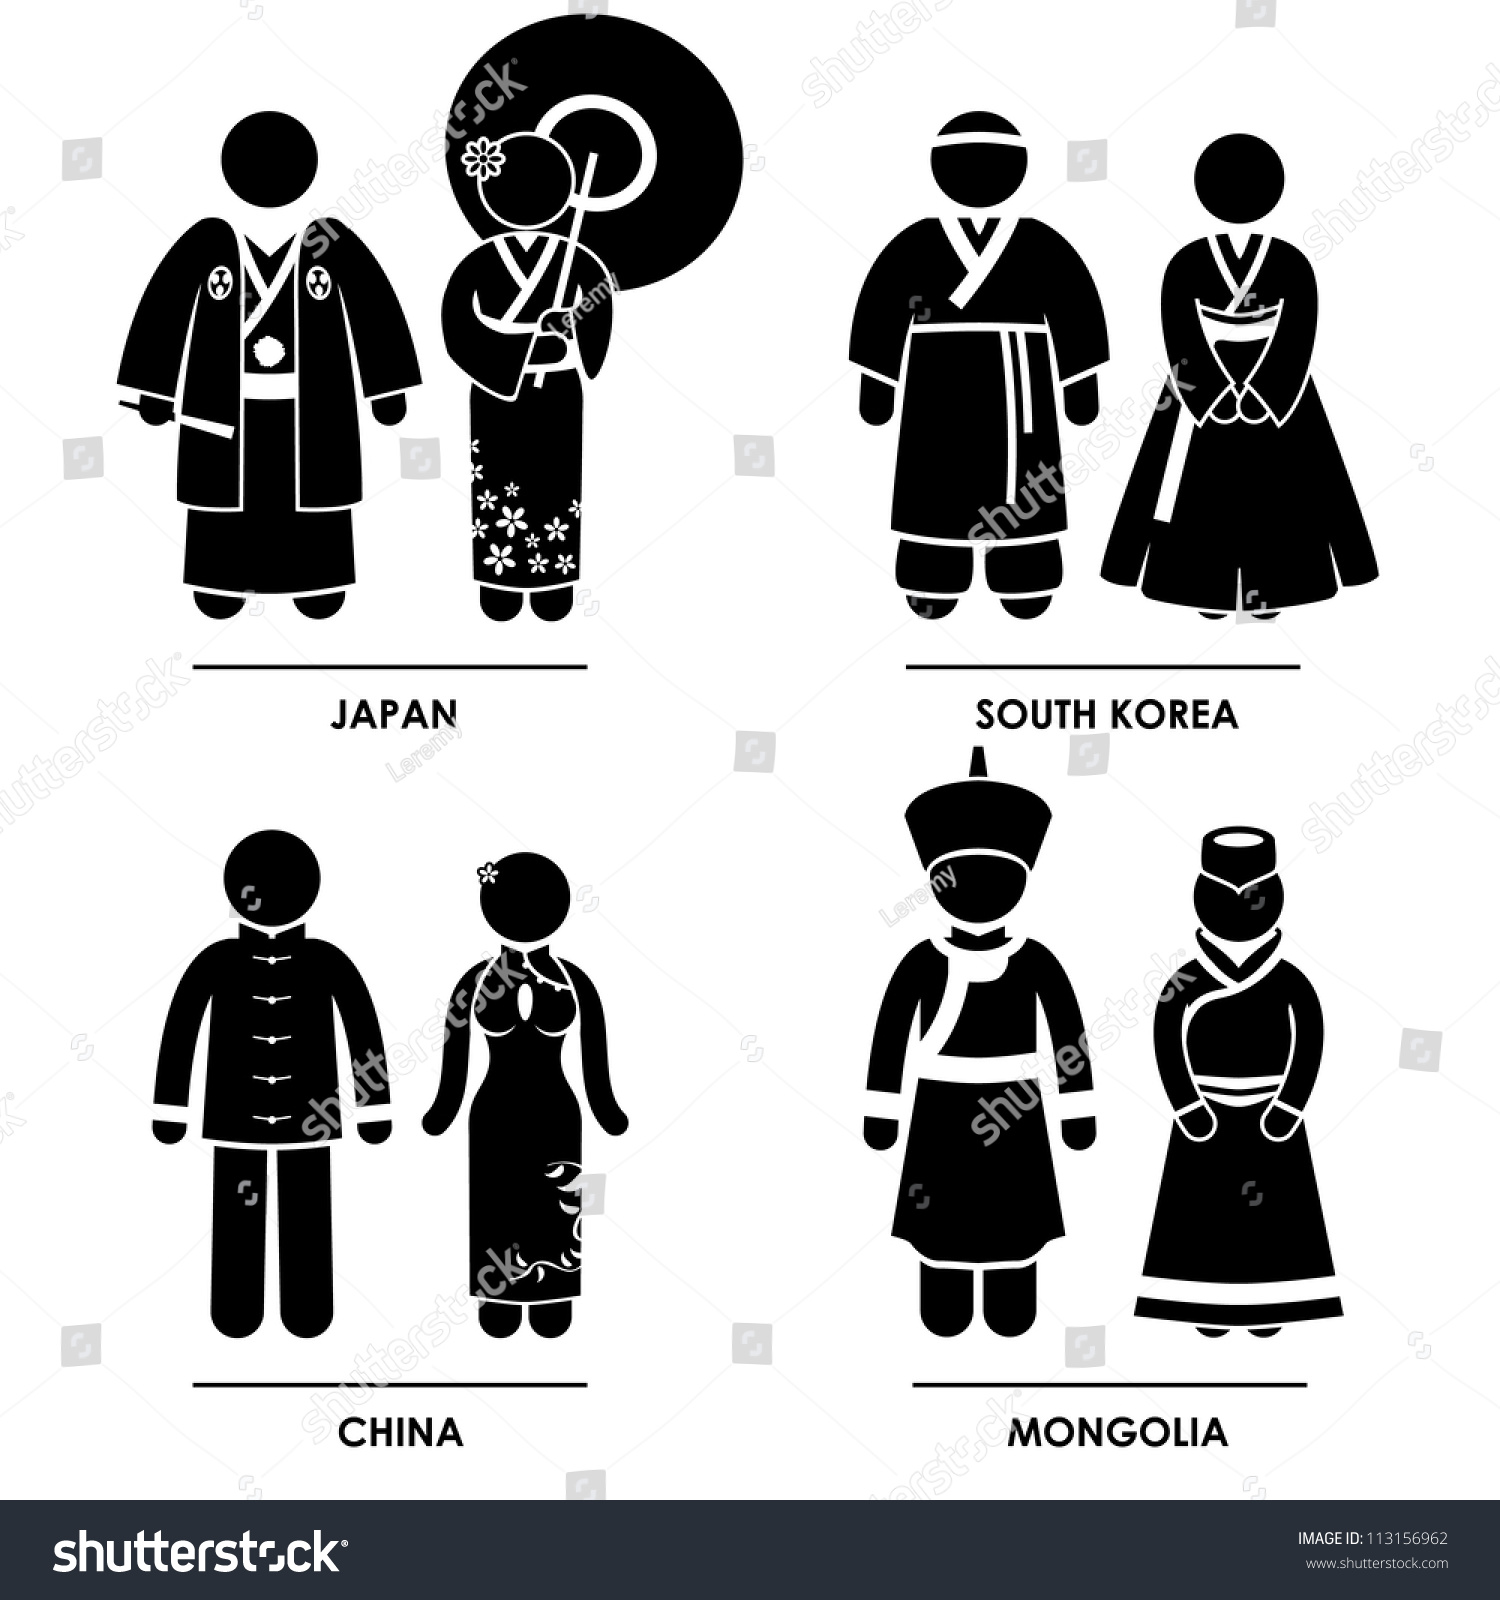 a comparison of traditional chinese culture and north american culture Traditional culture and modern culture are alike in ancient europe the celts and teutons lived traditional culture in ancient north america the anishinabe and lakota lived traditional a closely related comparison between traditional and modern culture concerns ways of.